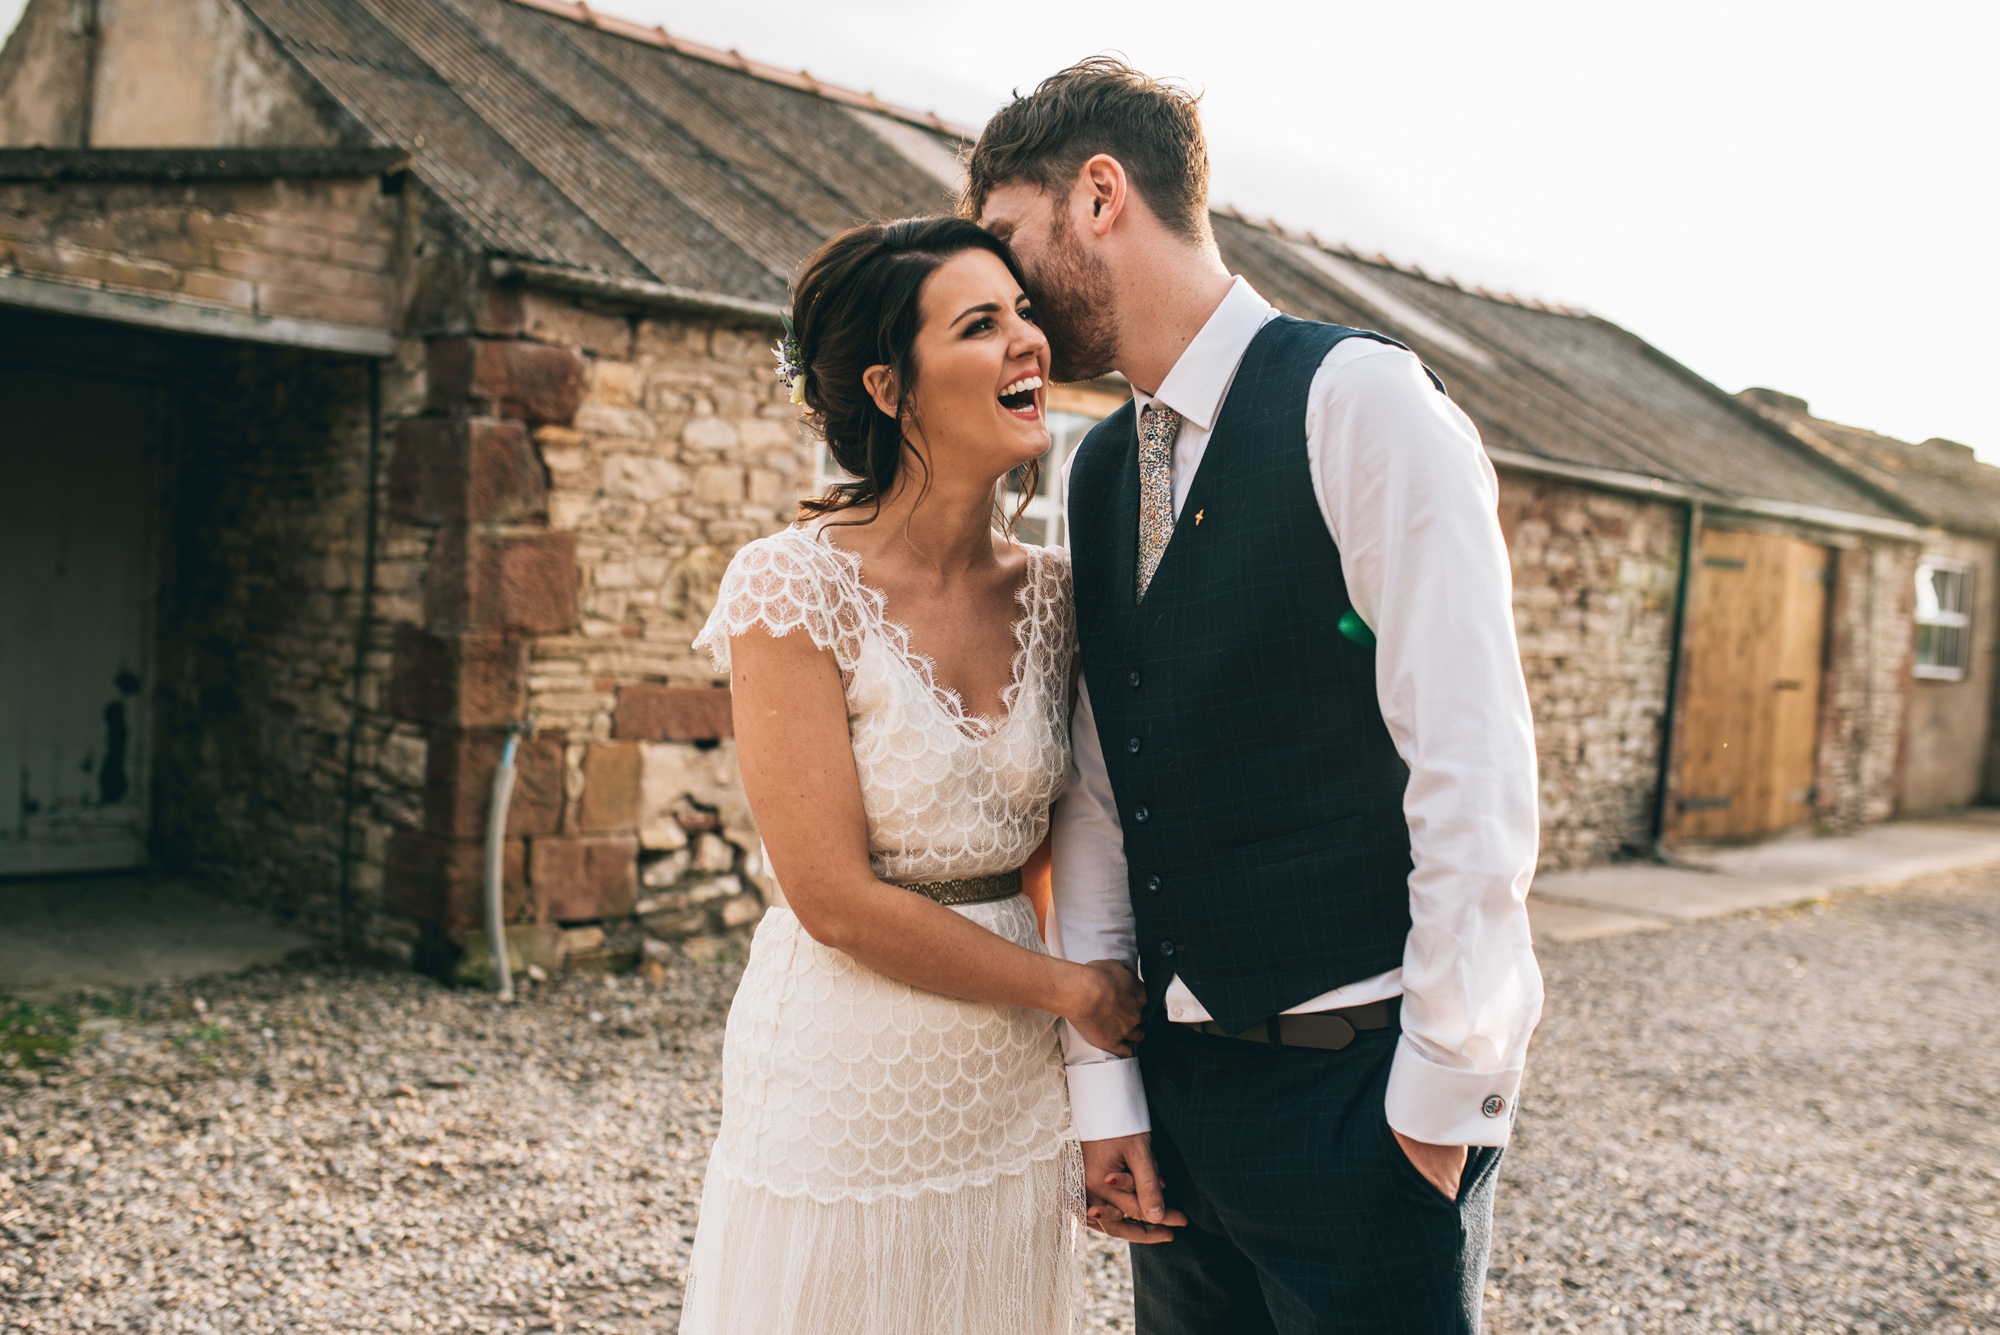 Kate-Beaumont-Sheffield-Lucy-Bohemian-Lace-Dress-Barn-Wedding-Cumbria-45.jpg